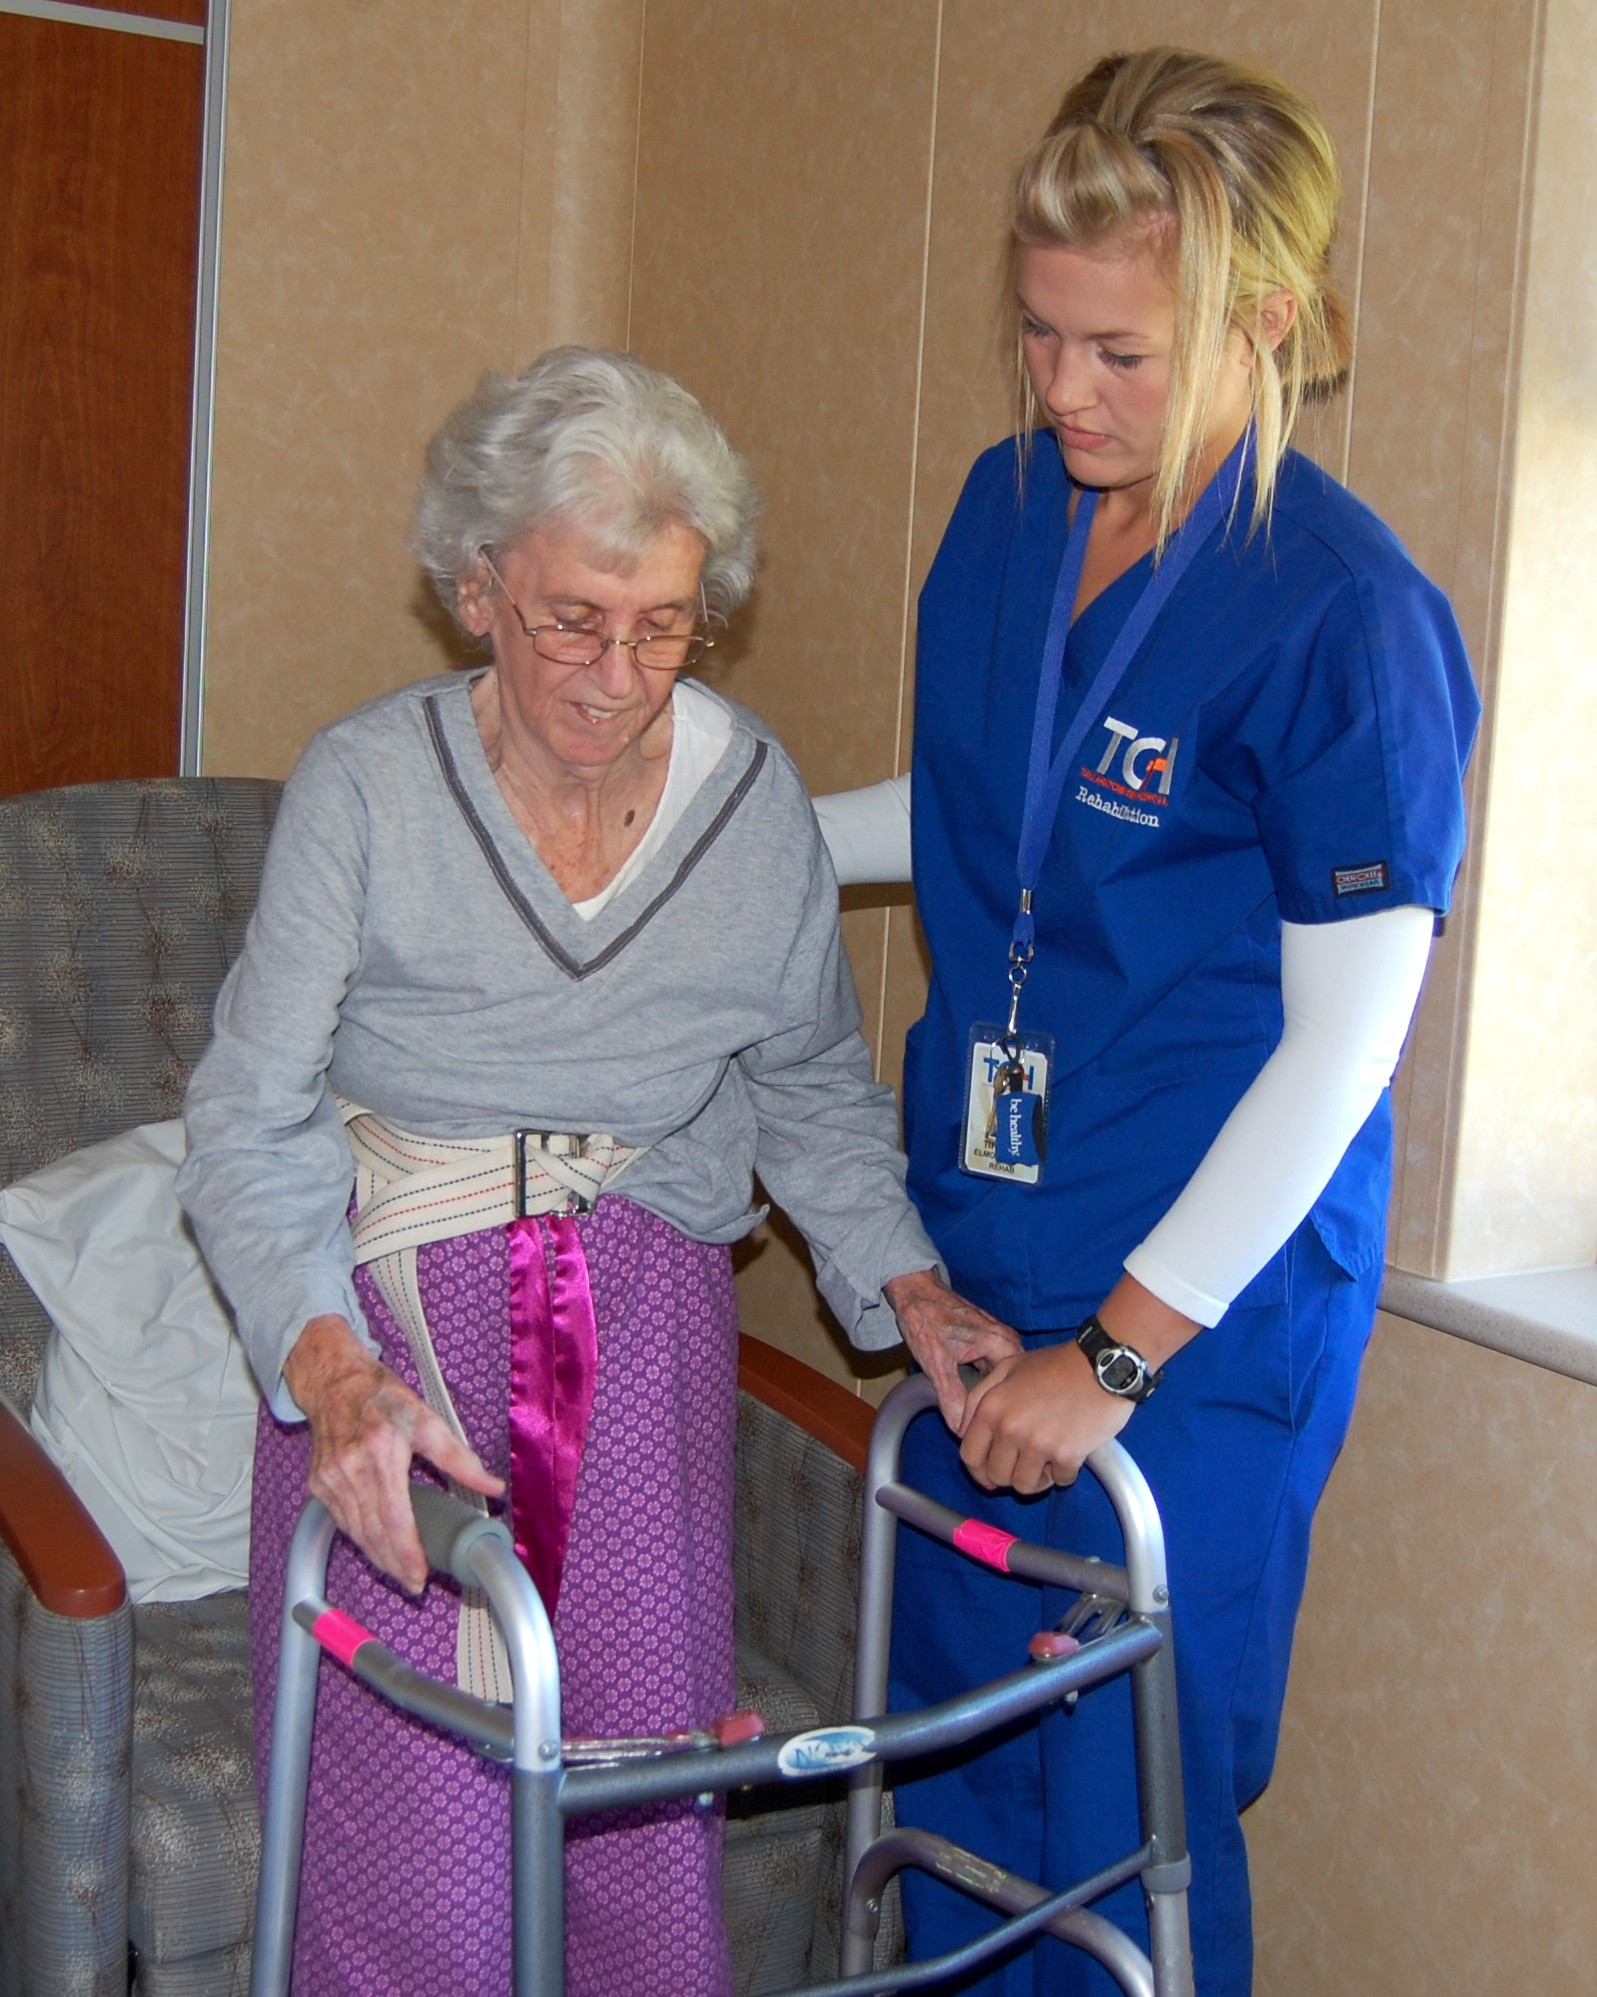 is inpatient rehab covered by insurance